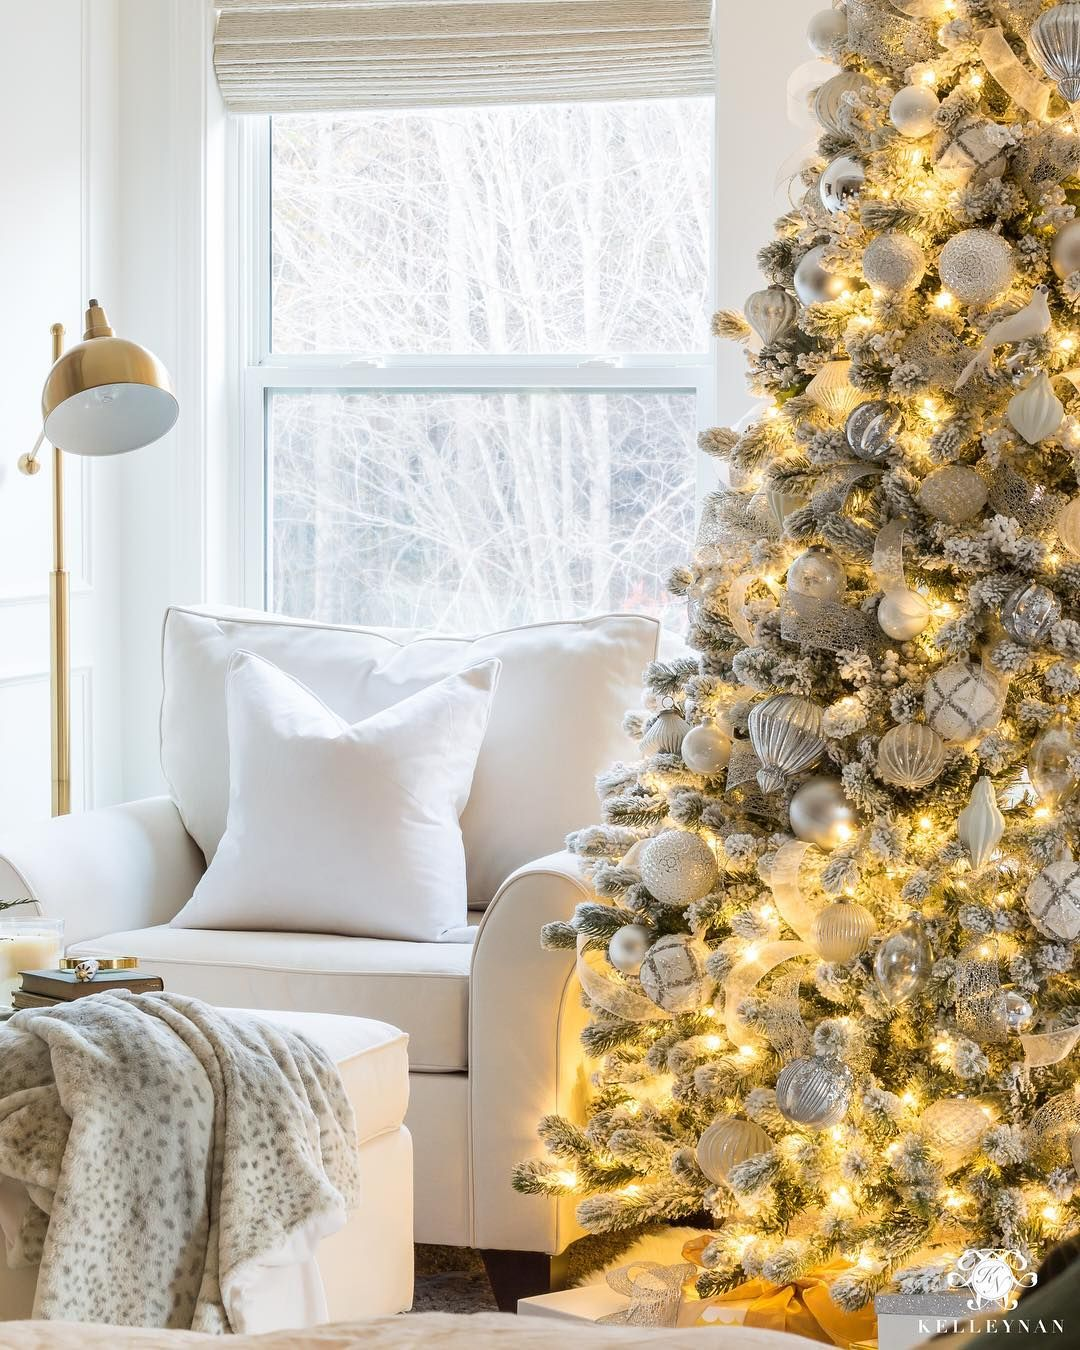 Brilliant Christmas Tree Decorating Ideas From Instagram | Real ...